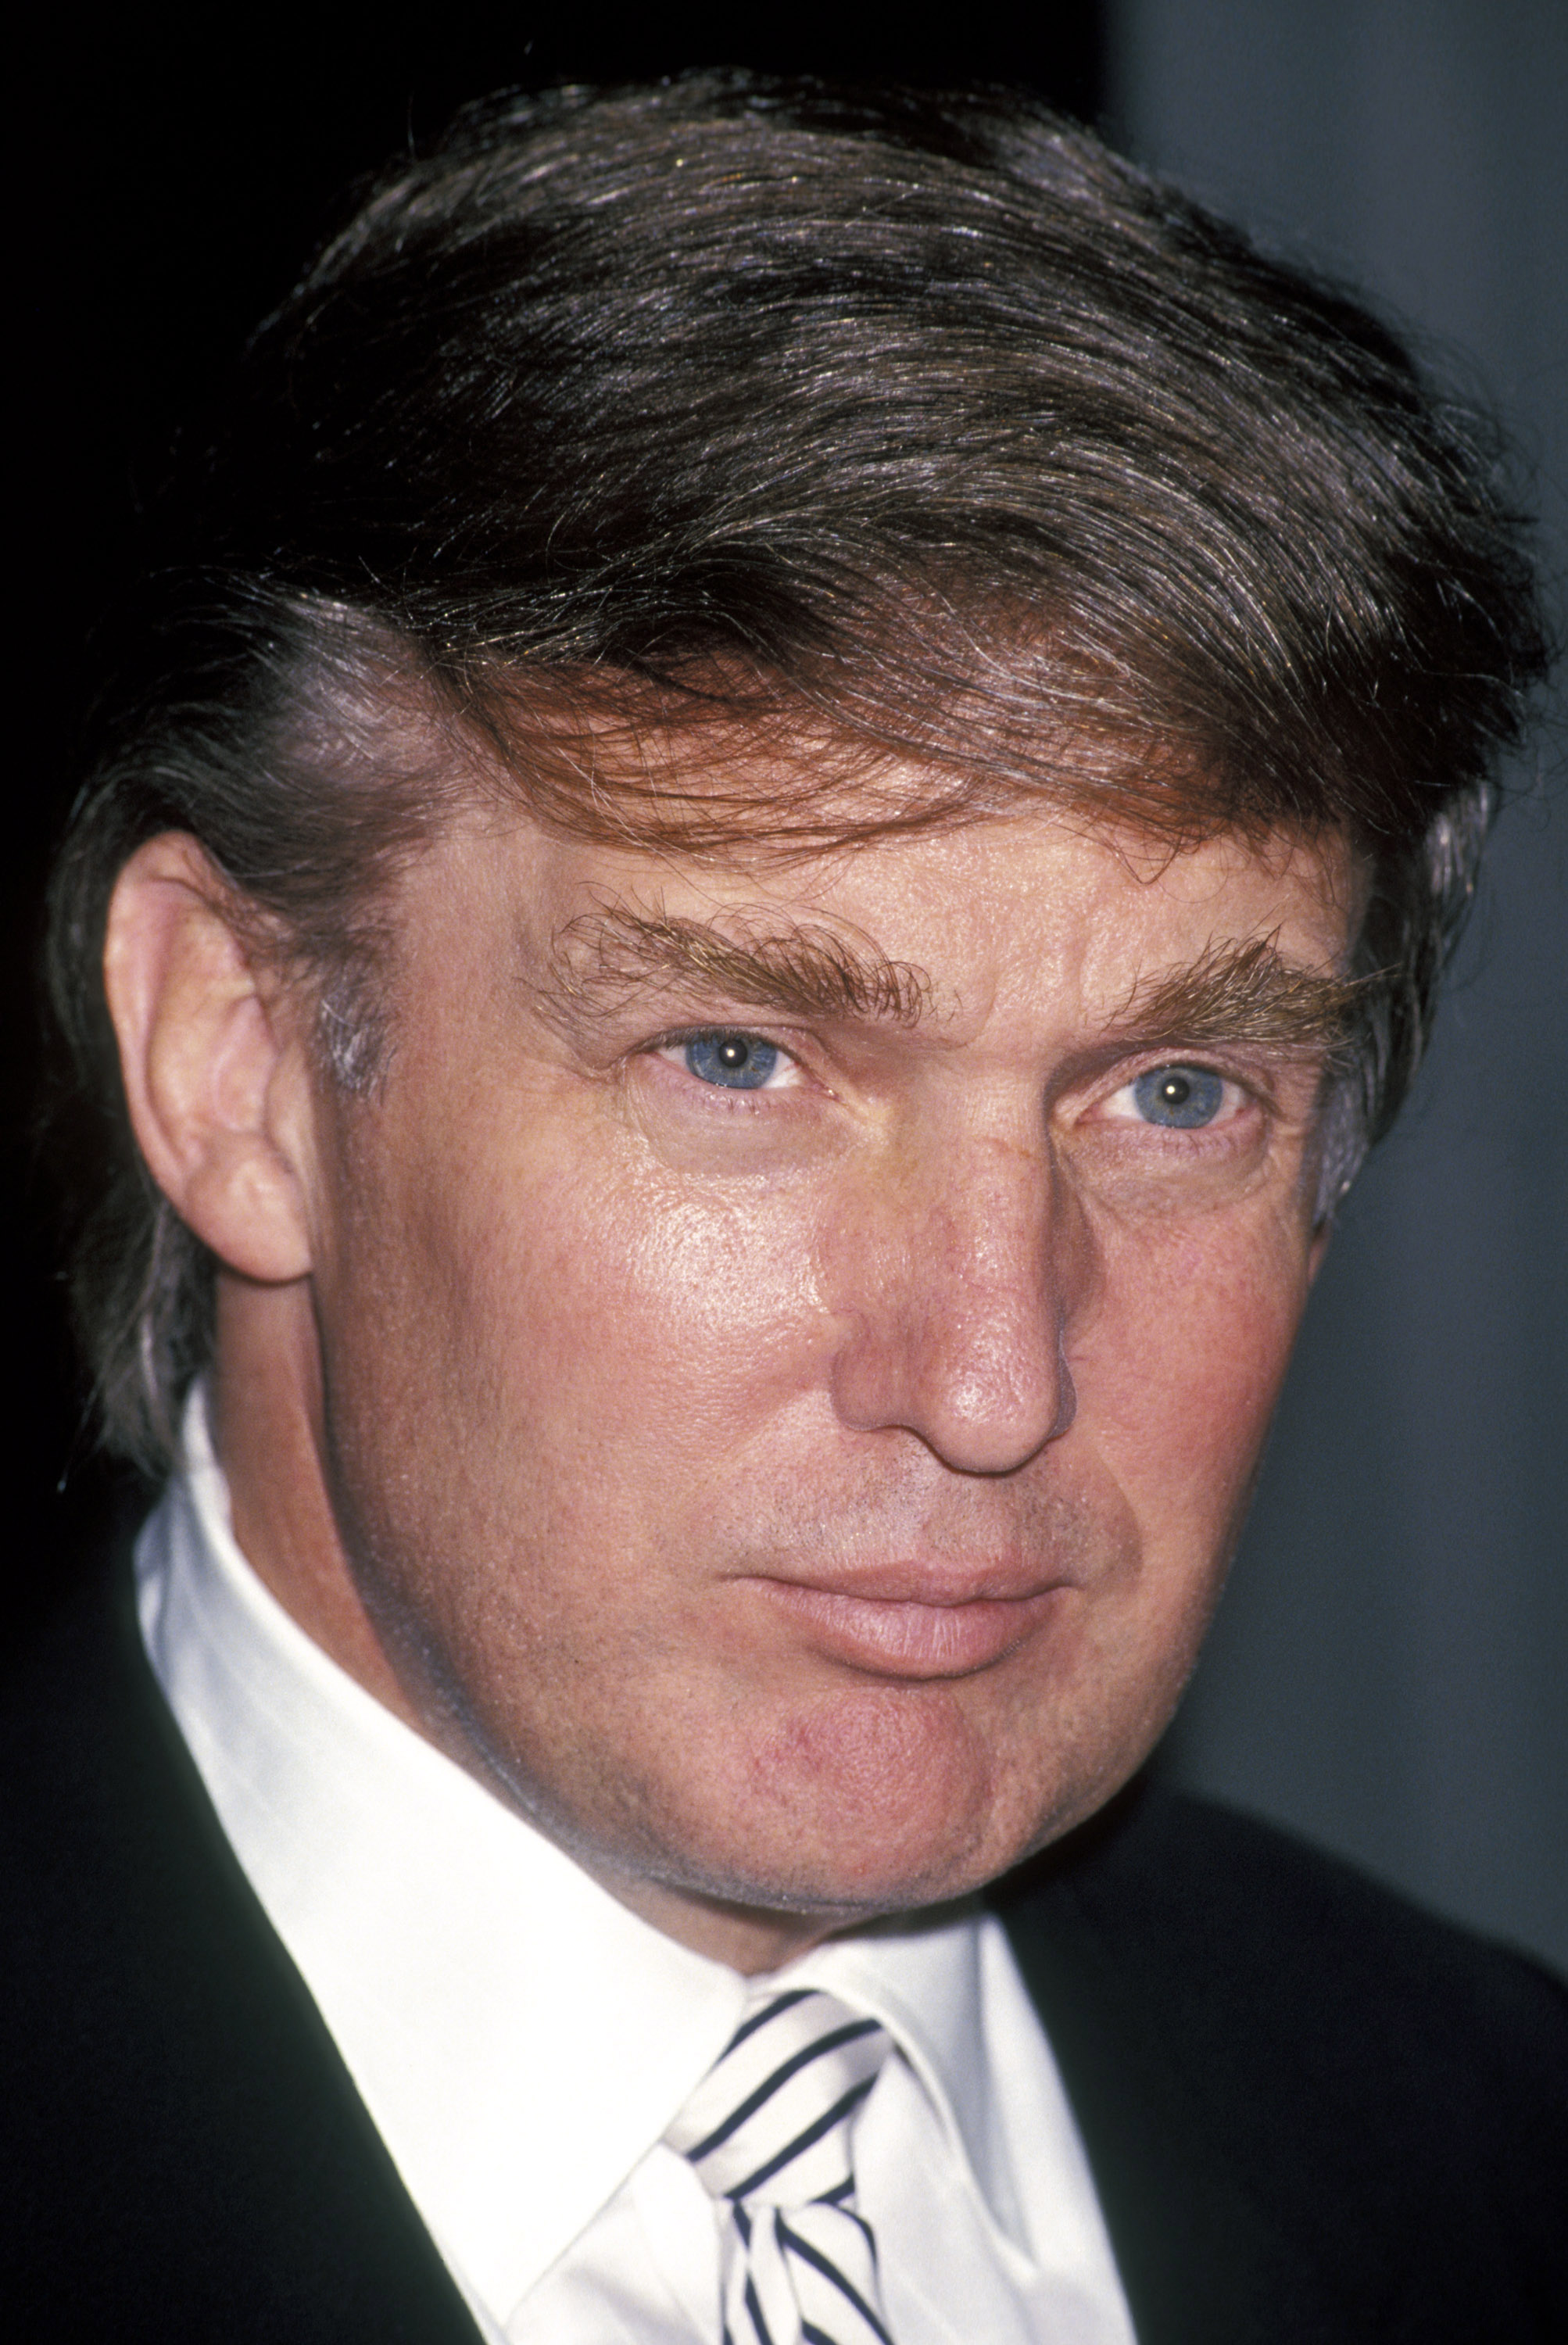 Donald Trump during Business Traveler International Luncheon - November 26, 1991 at Plaza Hotel in New York City, New York, United States. (Photo by Ron Galella/WireImage)